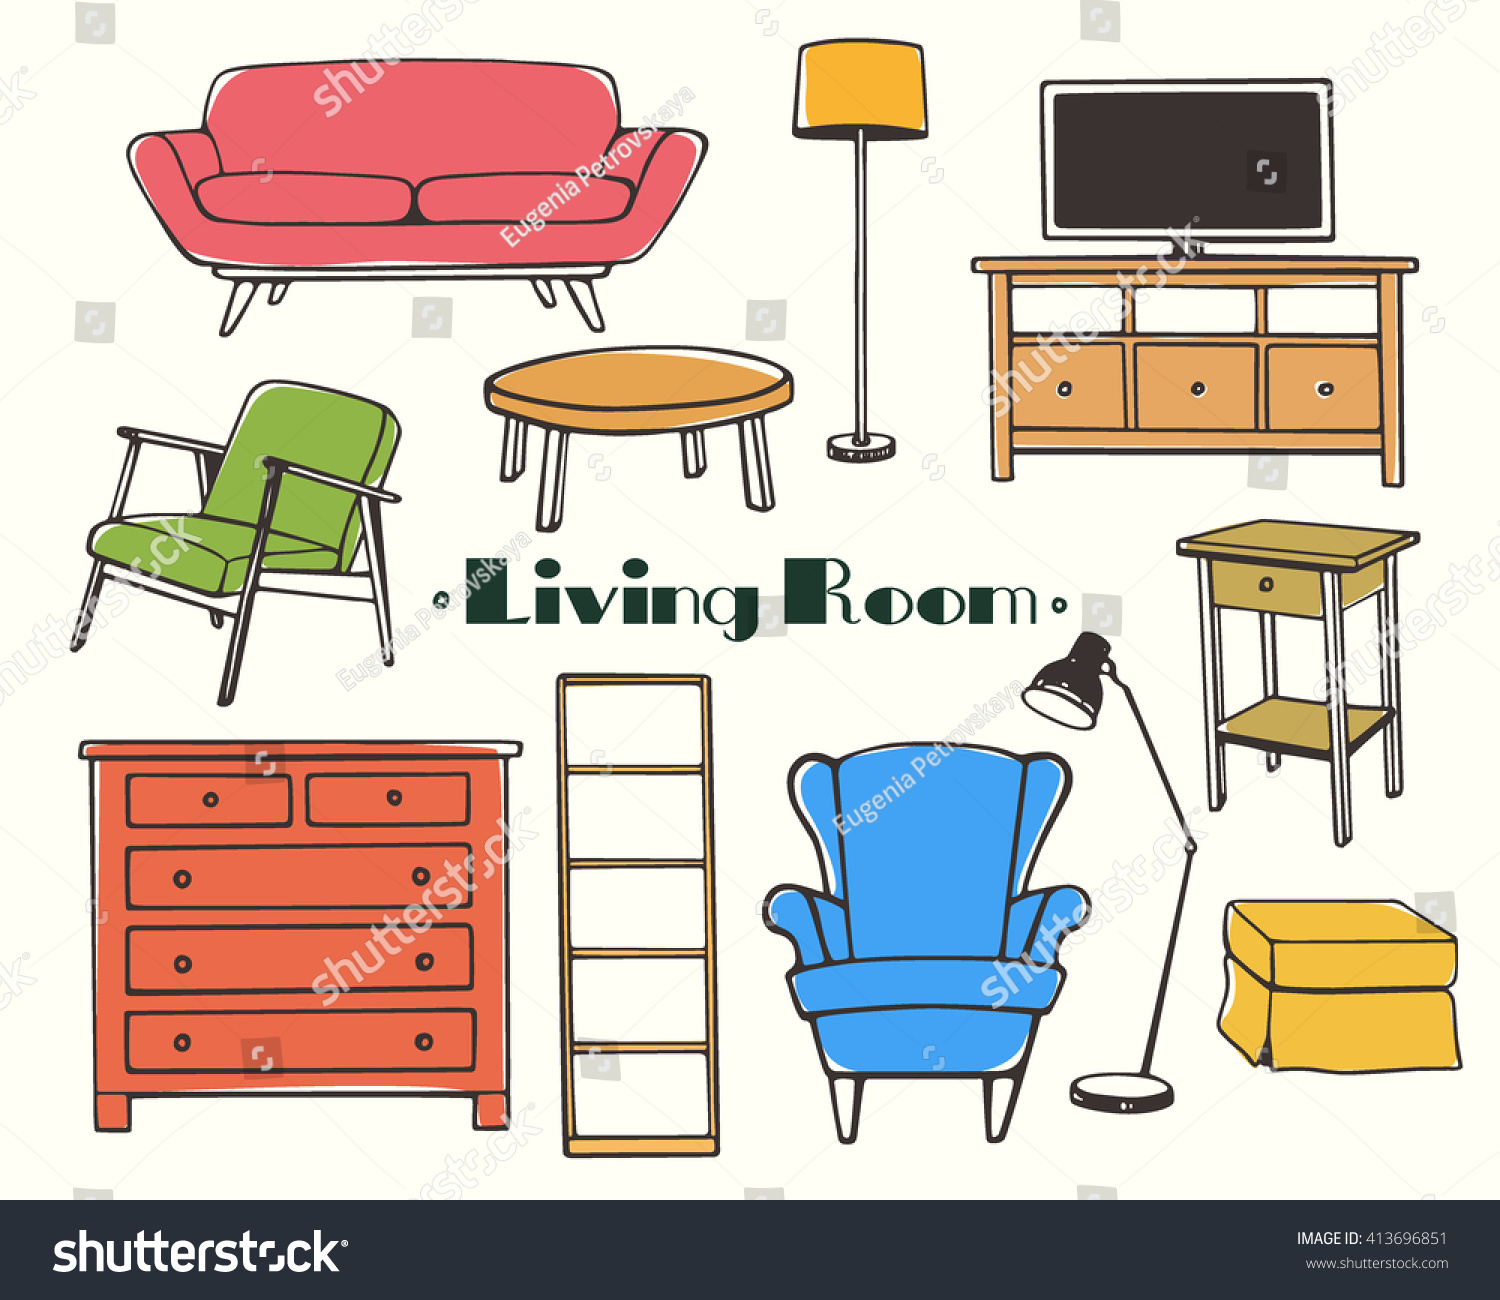 Furniture Ideas For Living Room Stock Vector: Vector Illustration Living Room Furniture Hand Stock